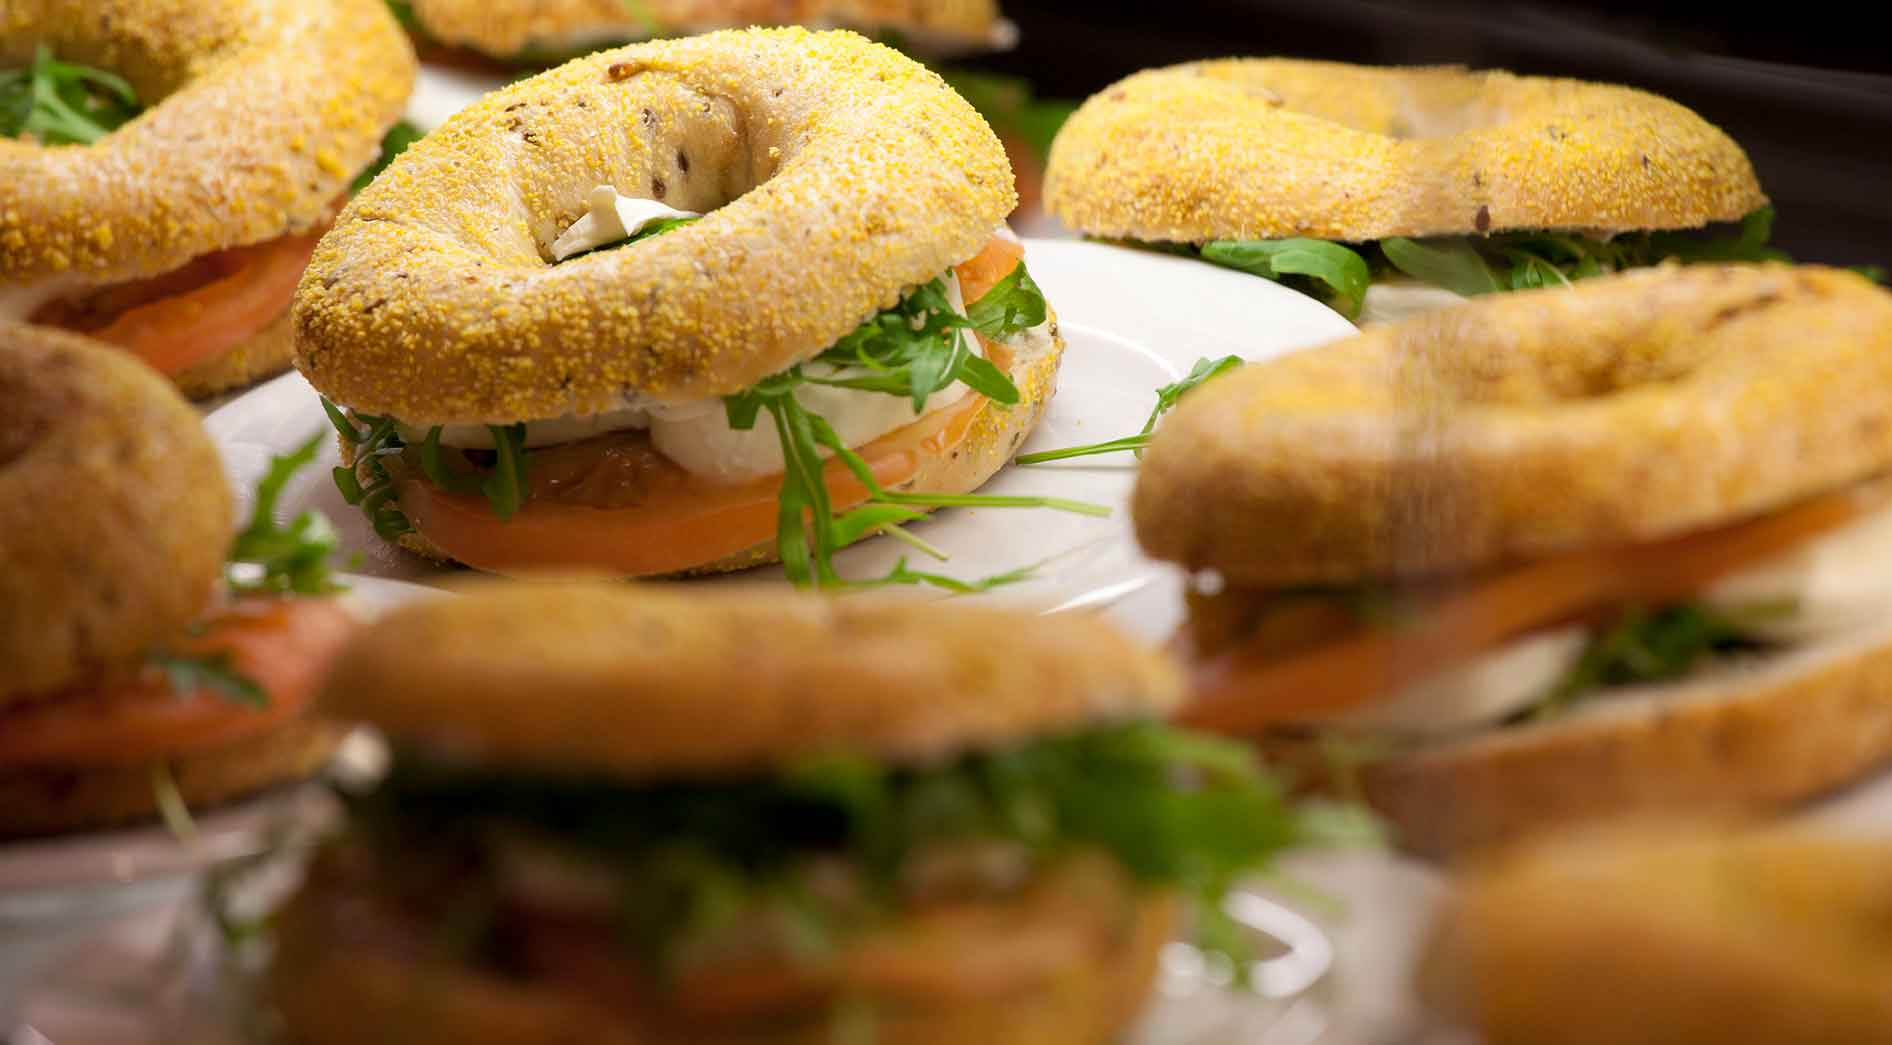 Catering: Bagel with salmon and cream